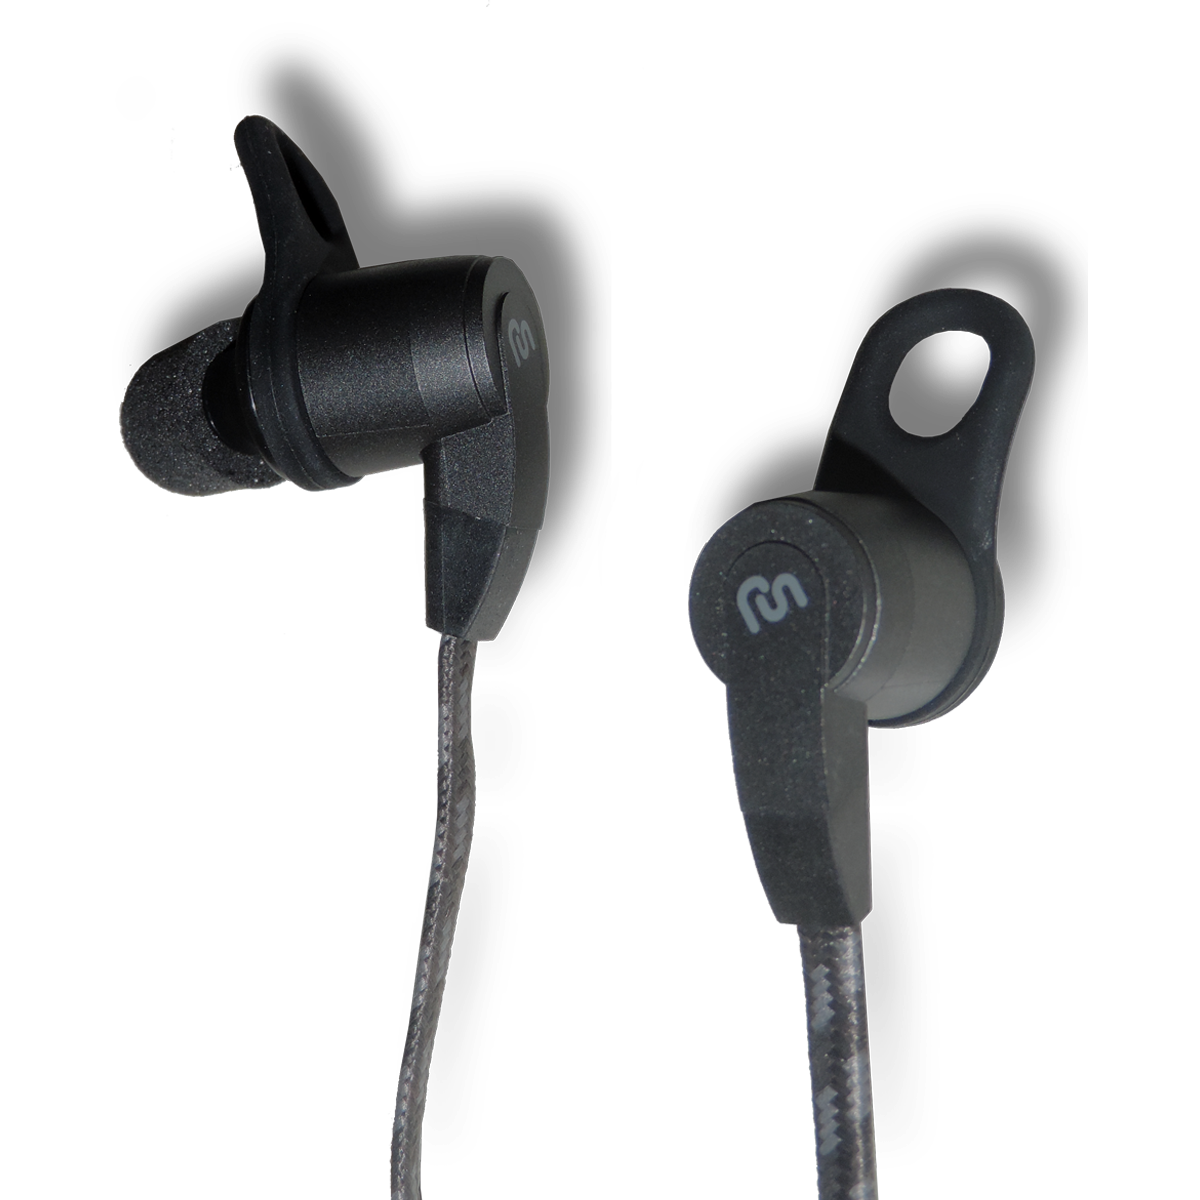 Rbh Sound Edition Prostereo H2 Bluetooth Stereo Headphones